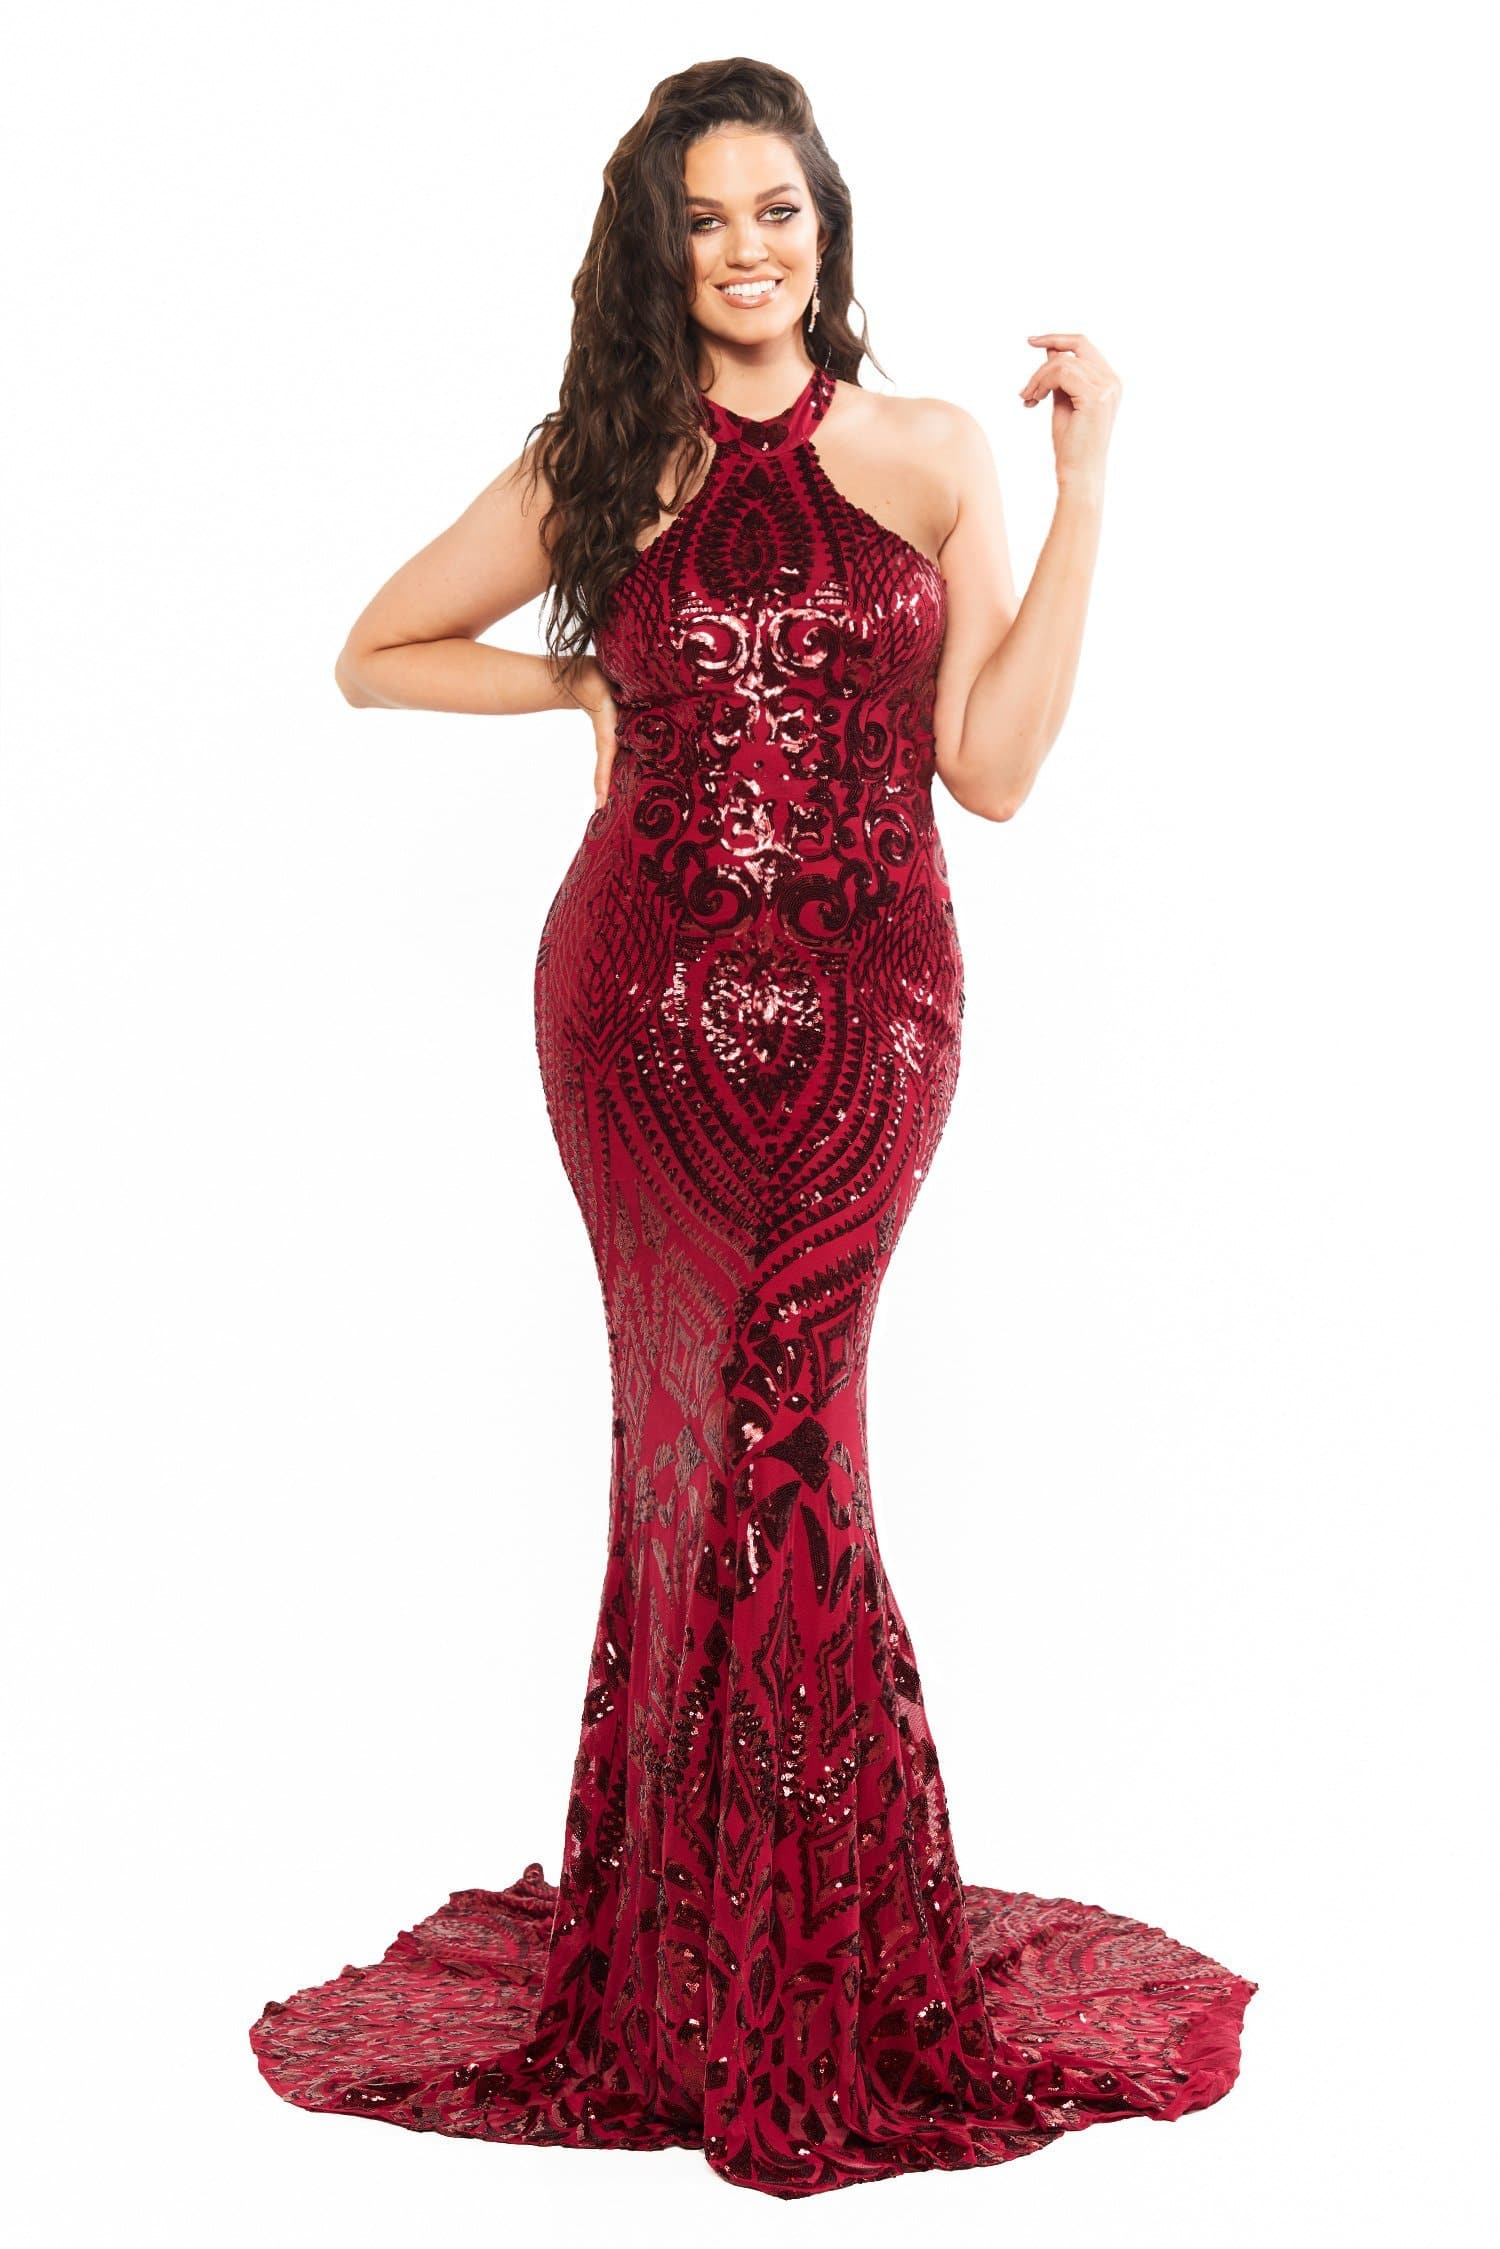 A&N Curve Fabiana -  Burgundy Sequin Mermaid Gown with High Neckline